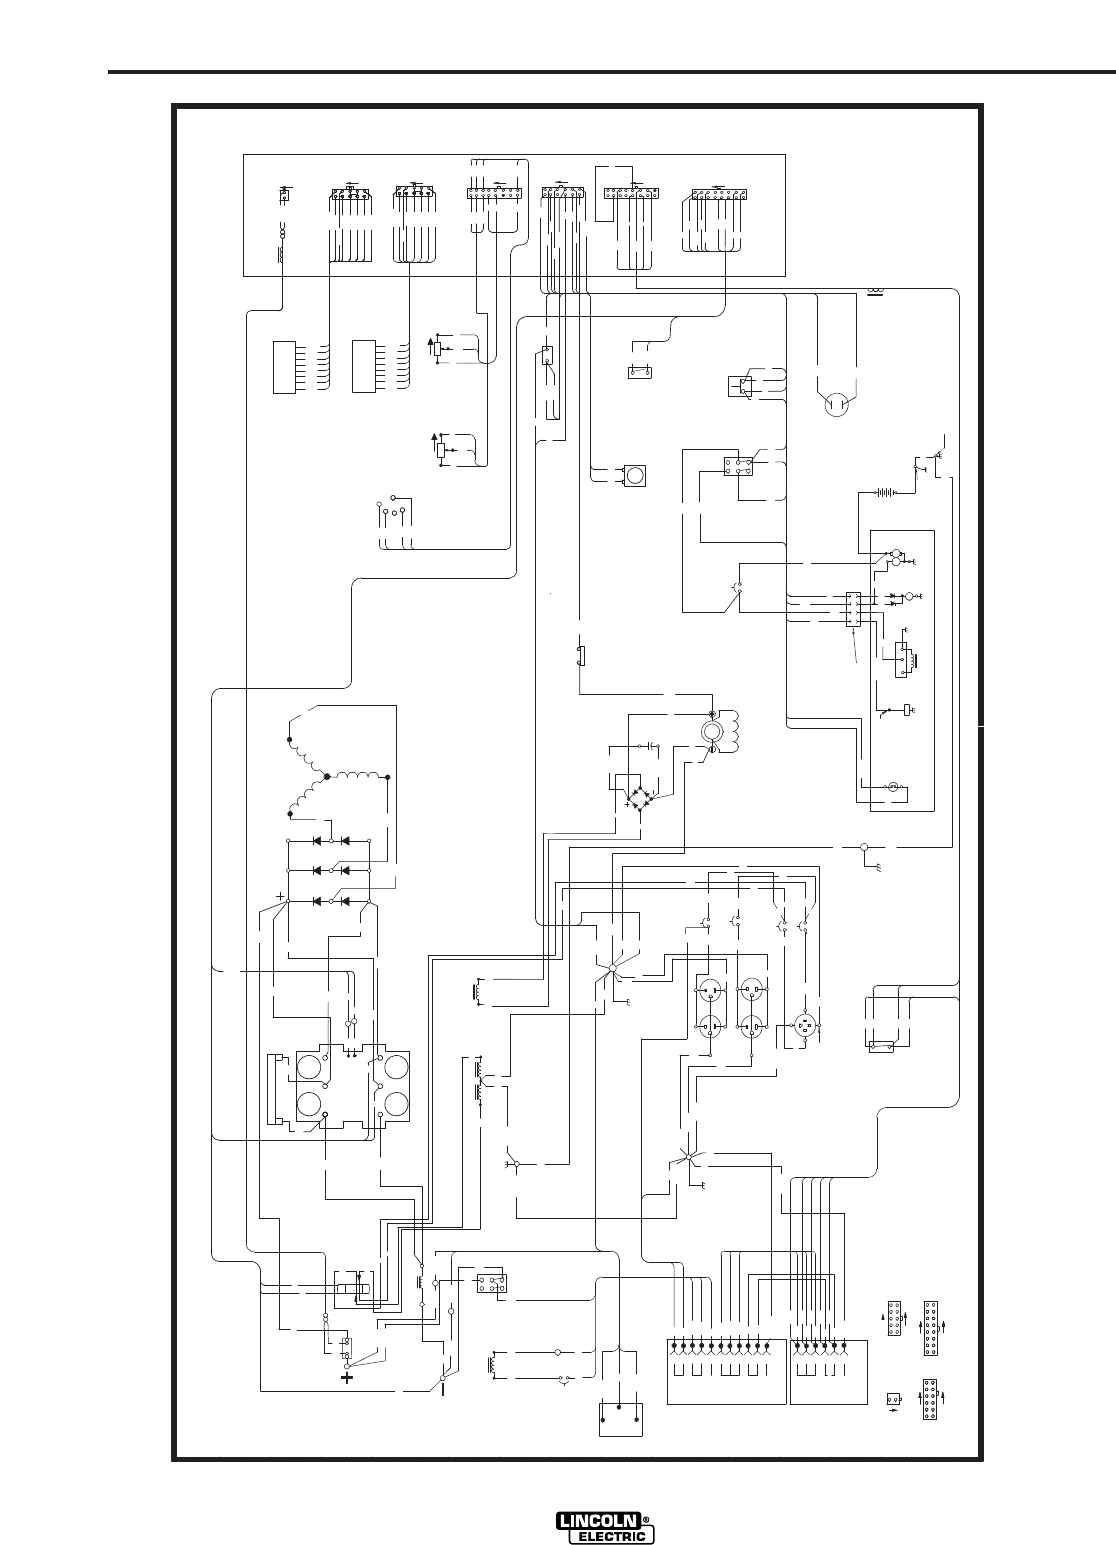 lincoln 225 wiring diagram pdf with Lincoln Electric Wiring Diagrams on Welder Miller Bobcat 225 Wiring Diagram in addition Standby Generator Wiring Diagram likewise Century Welder Wiring Diagrams For A also Hobart Welder Wiring Diagram likewise Plasma Cutter Wiring Diagram.